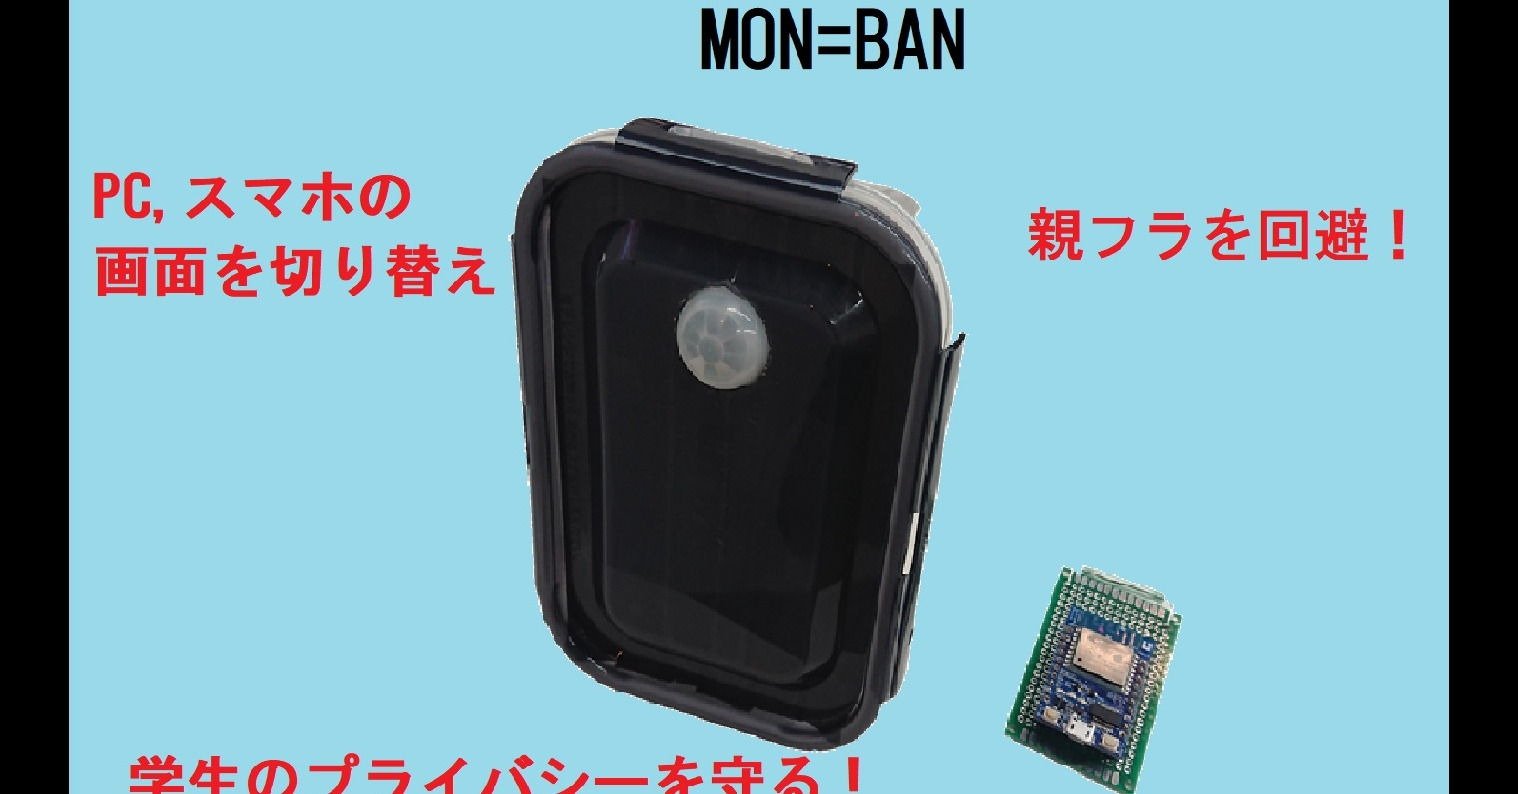 Mobile Phones, Mobile Phone Accessories, Font, Product design, Electronics, Brand, Computer font, Design, Aspirin, バイ アスピリン, product, product, telephony, mobile phone, technology, font, gadget, electronic device, communication device, mobile phone accessories